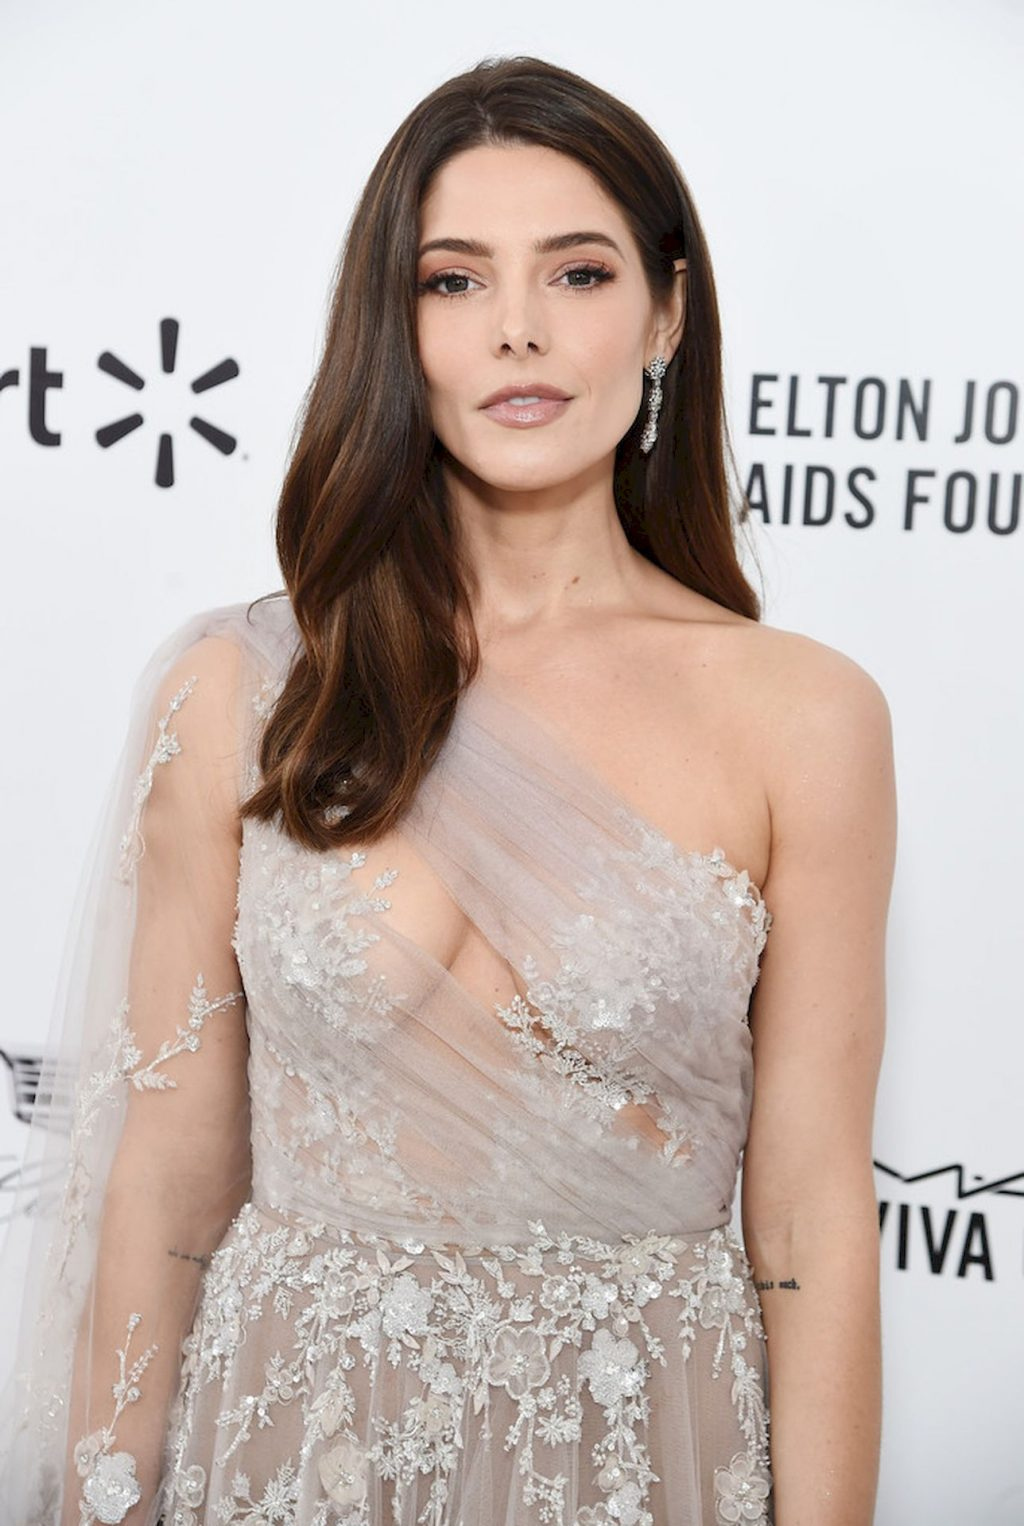 Ashley Greene Shows Her Tits at the Elton John AIDS Foundation Academy Awards Party (21 Photos)